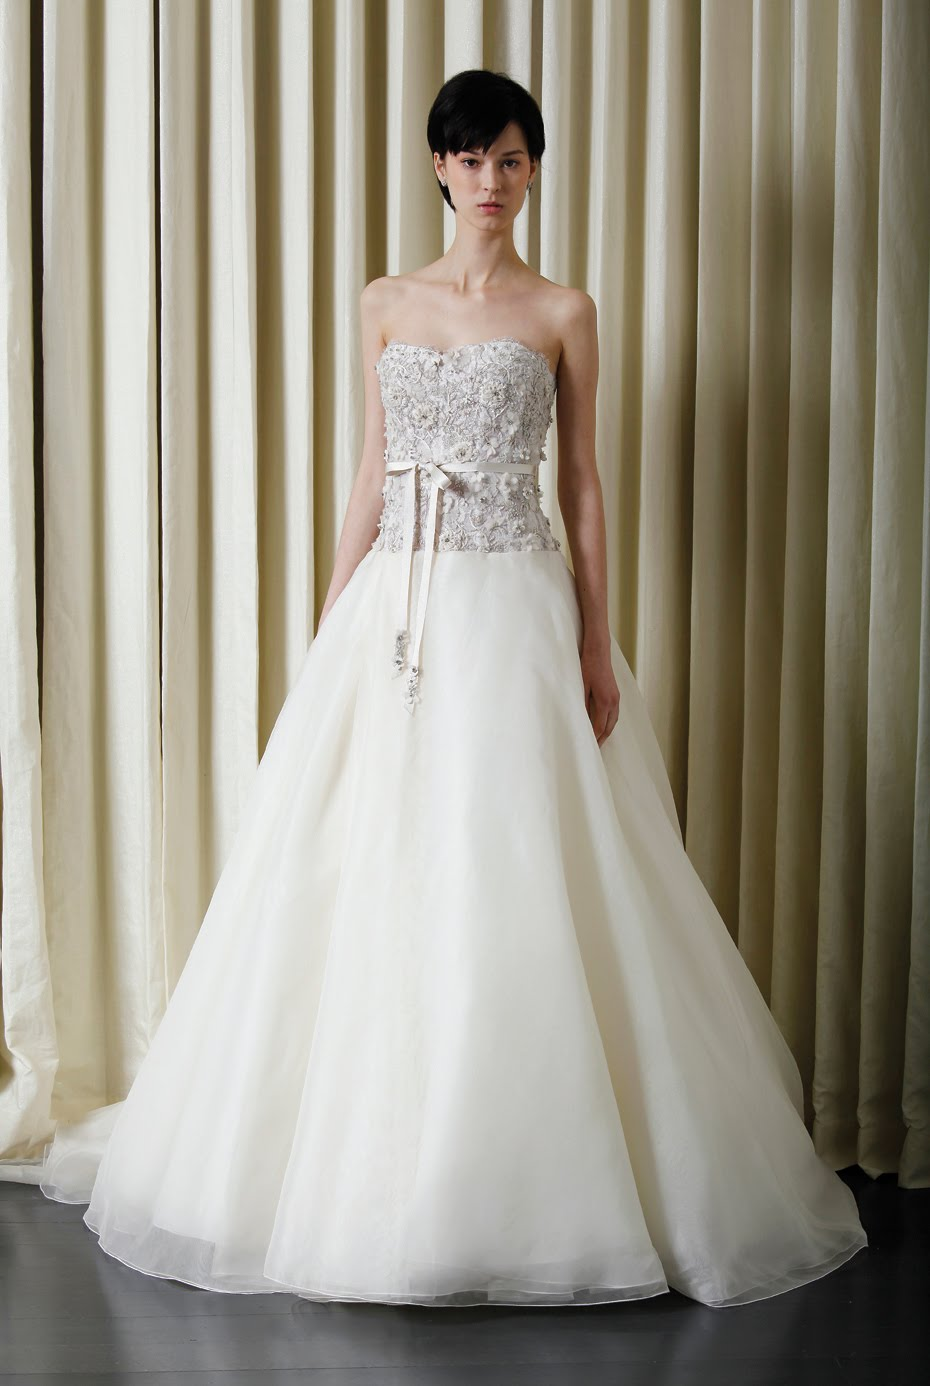 Amazing Britney Spears Wedding Gown Vignette - Colorful Wedding ...